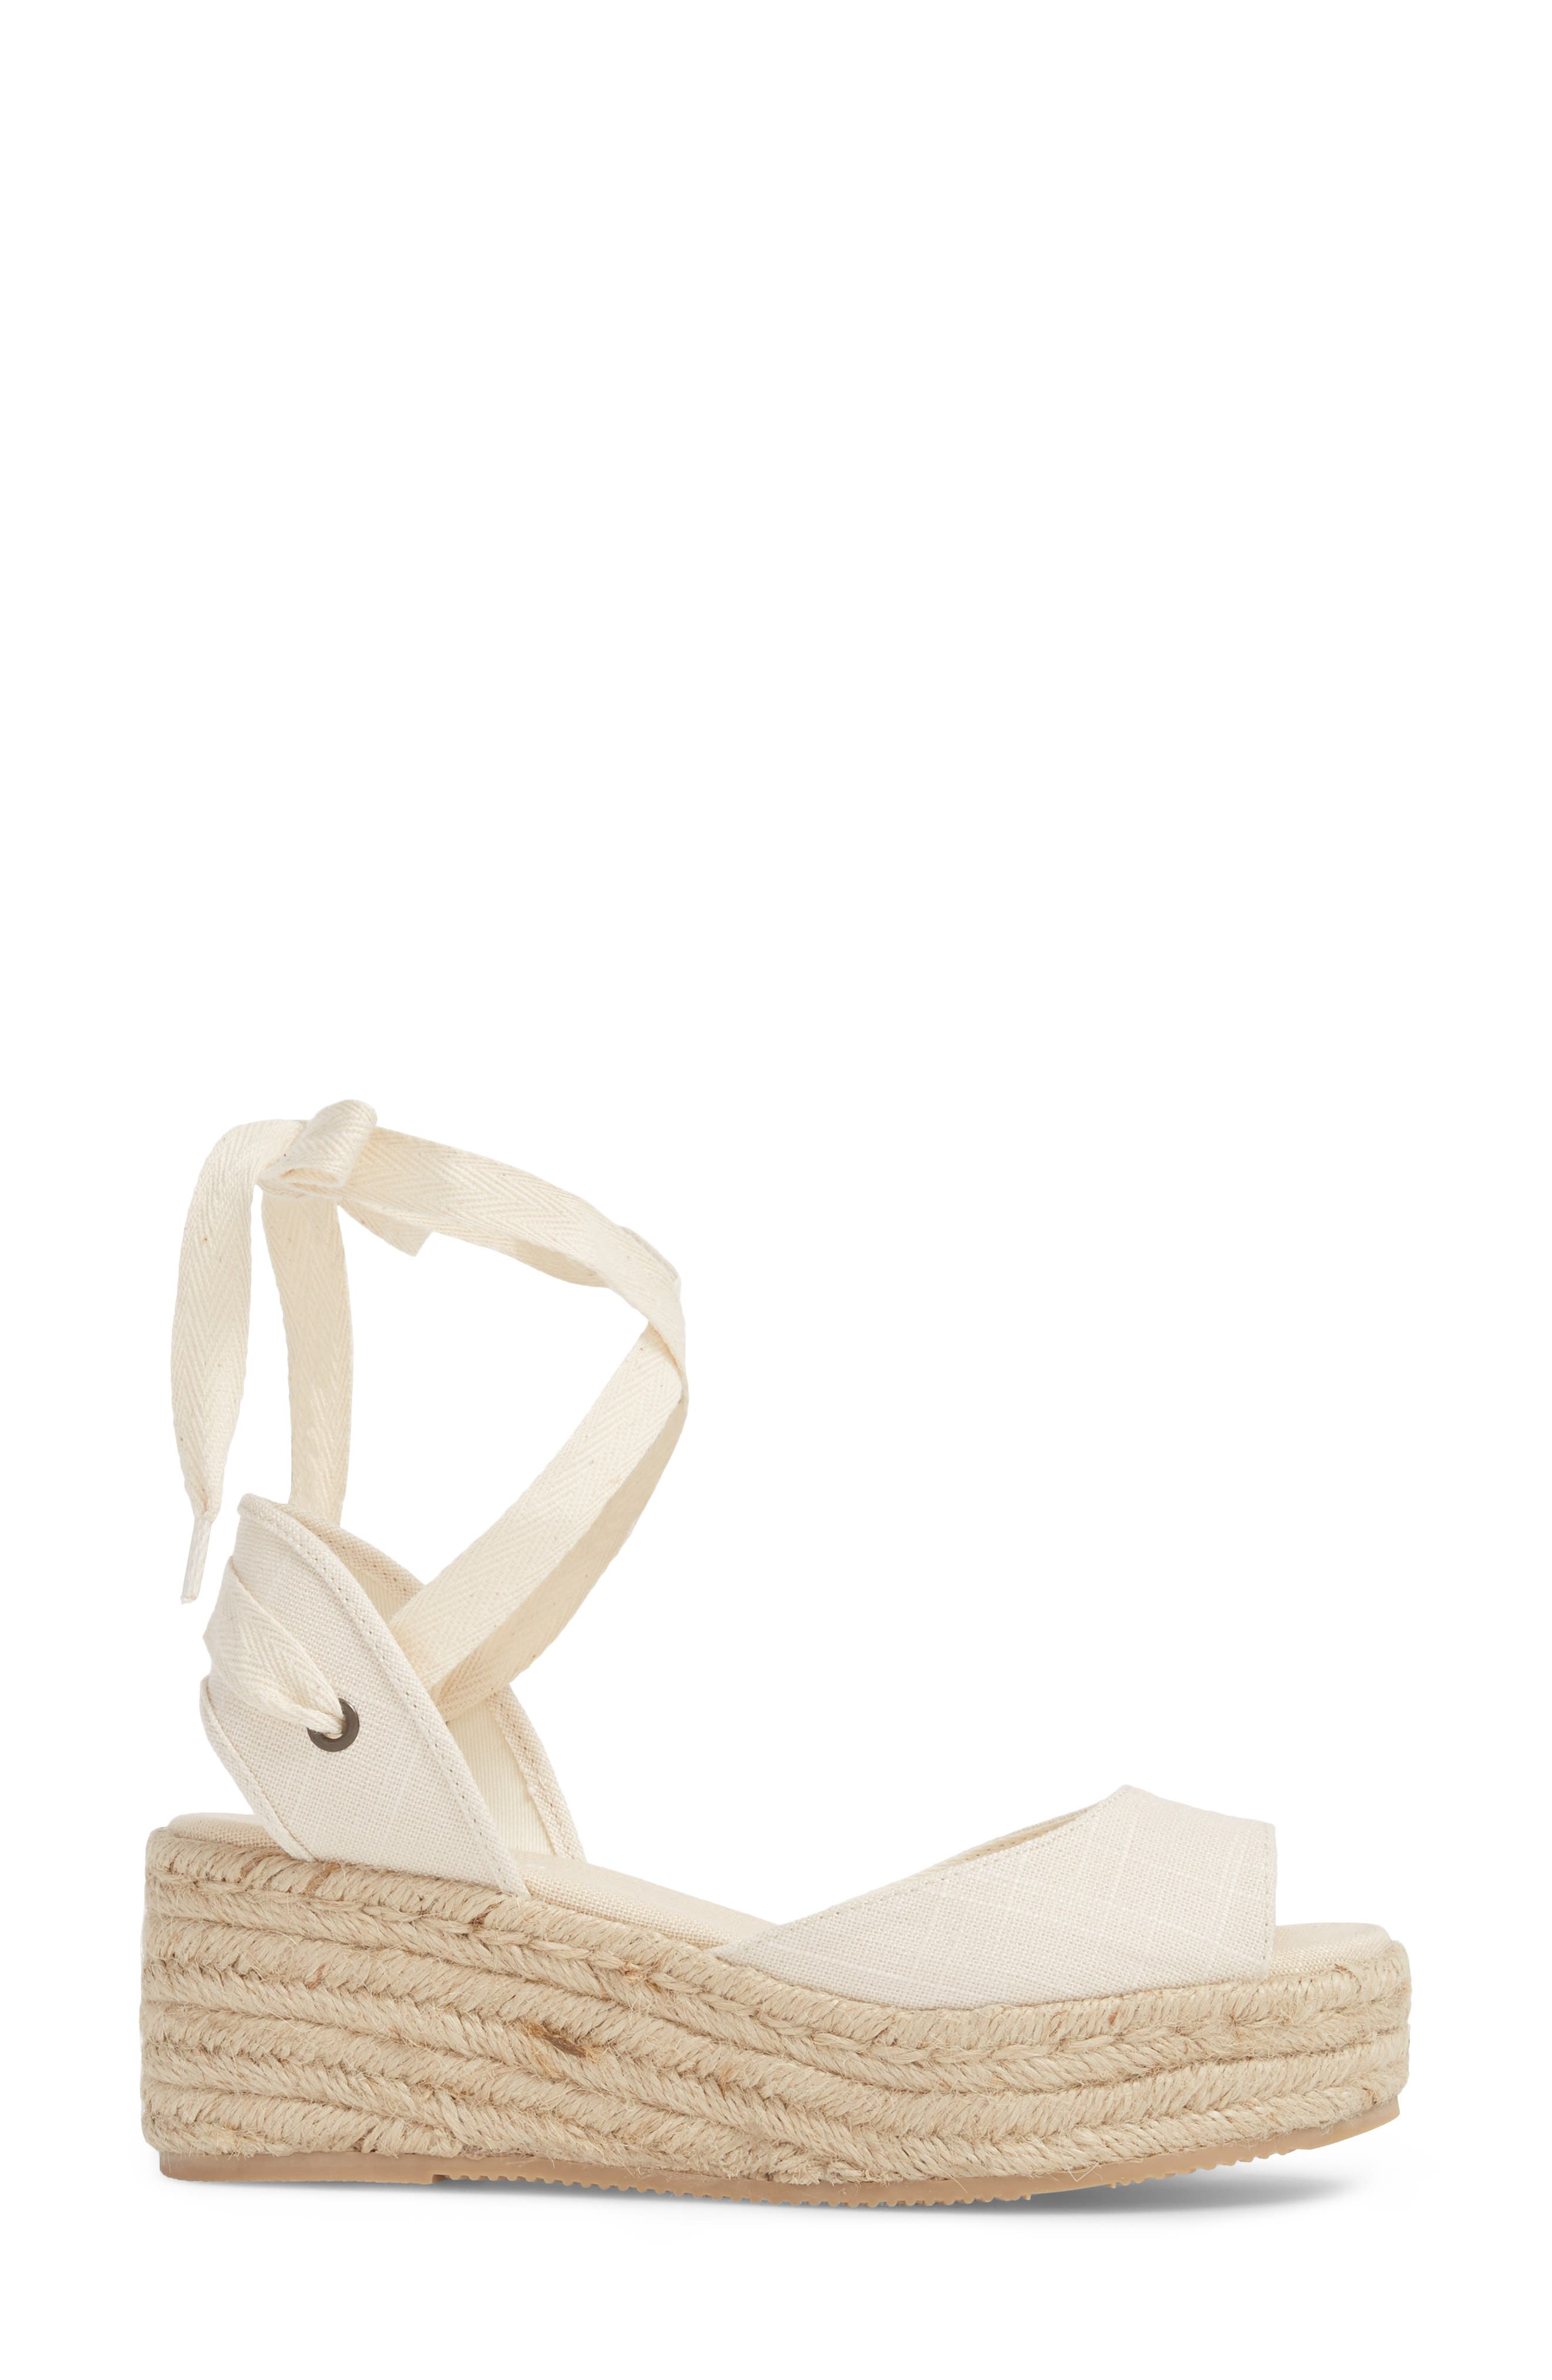 SOLUDOS, Espadrille Platform Sandal, Alternate thumbnail 3, color, BLUSH FABRIC